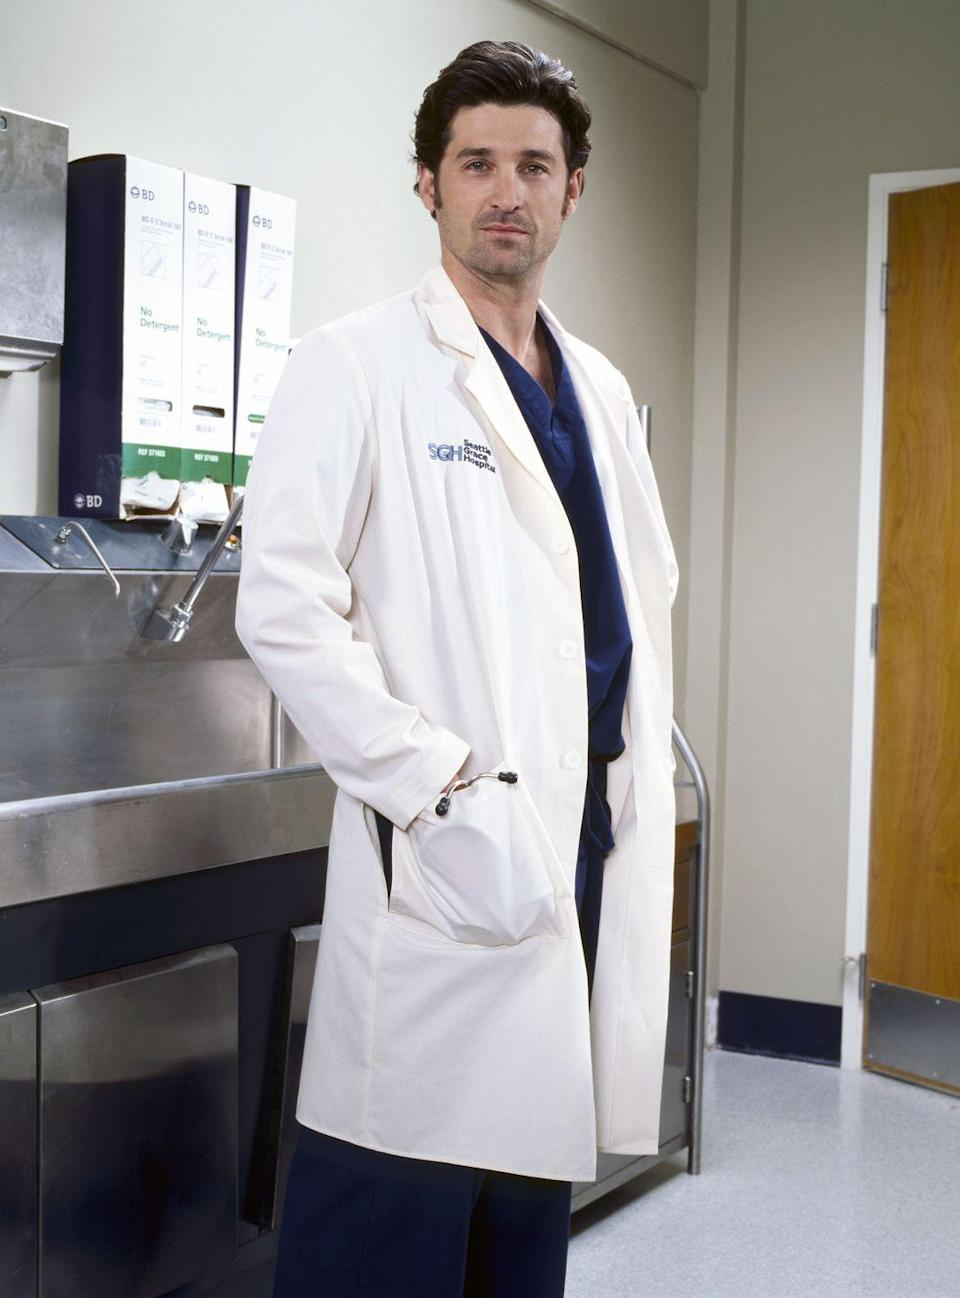 <p>Patrick Dempsey joined the cast of <em>Grey's Anatomy </em>in Season 1 as Derek Shepherd (a.k.a. McDreamy), a neurosurgeon and Meredith Grey's love interest. </p>